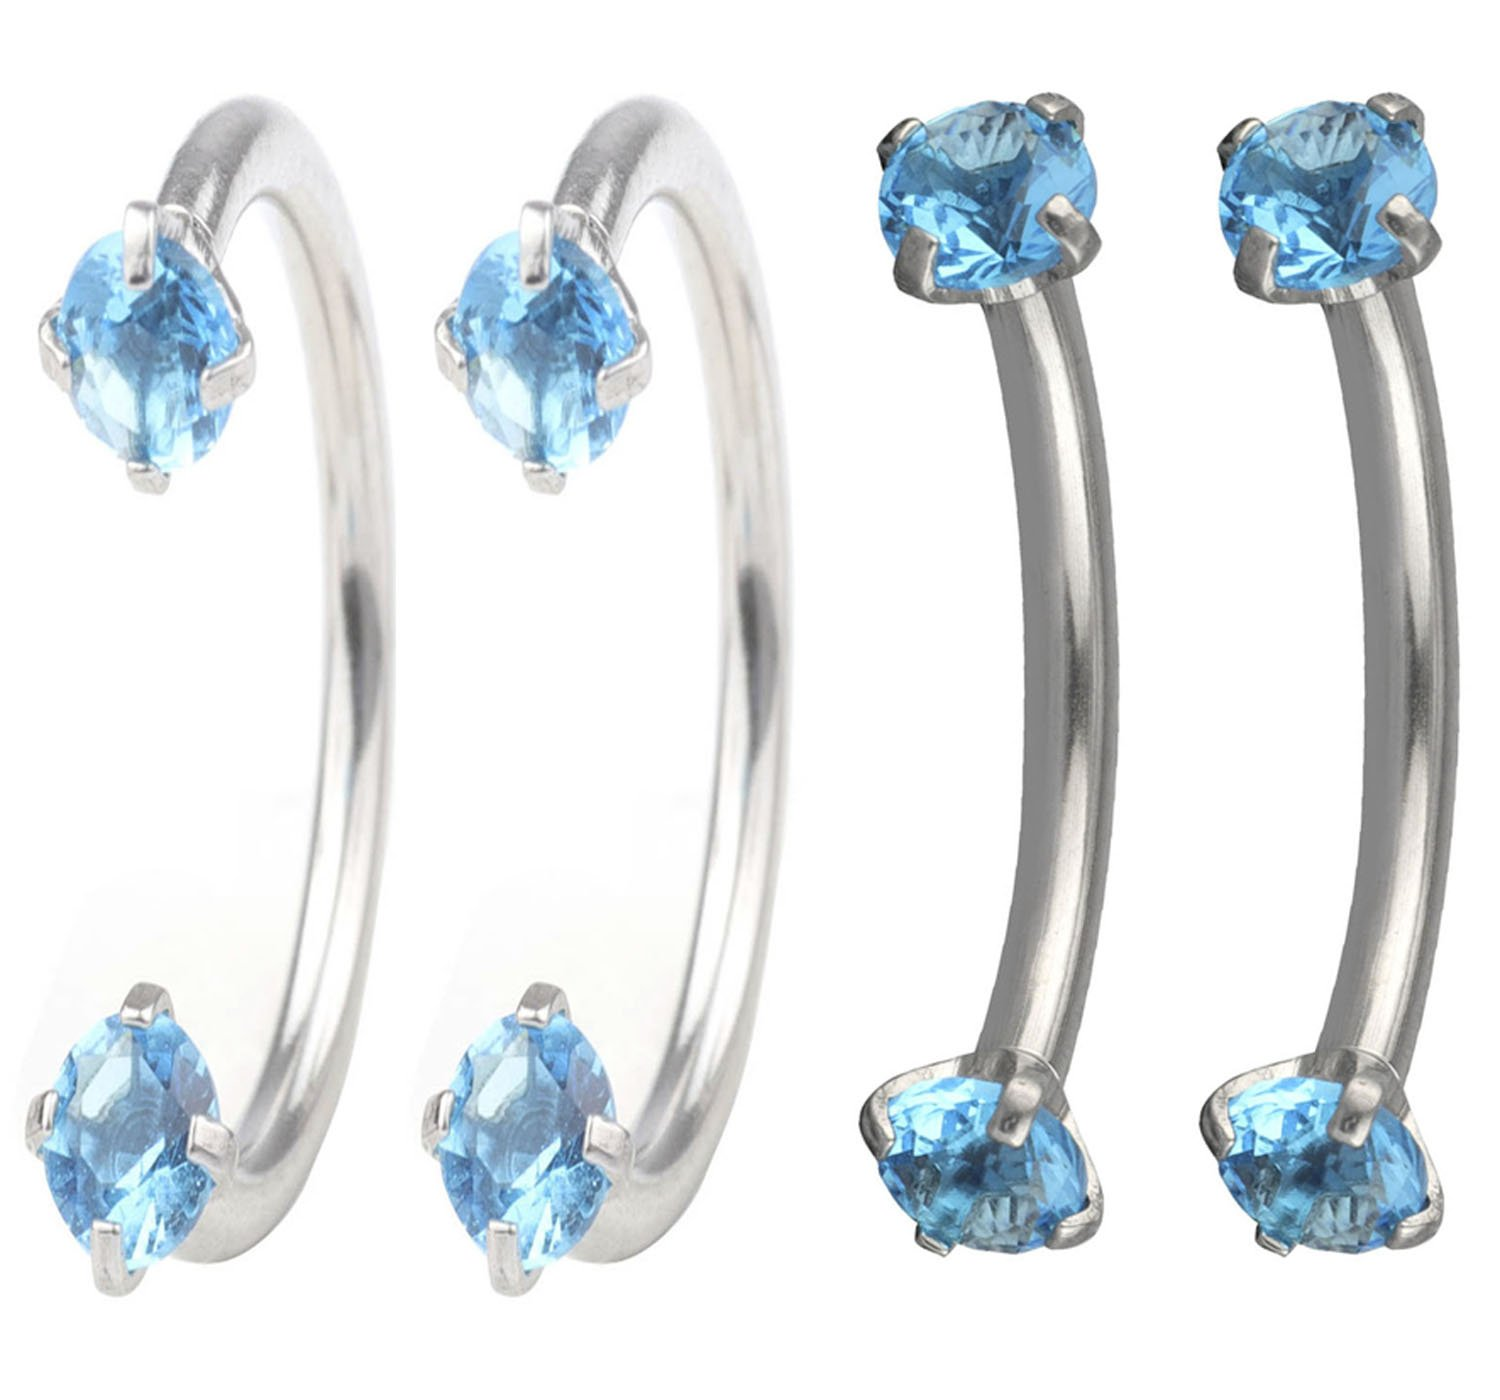 FB 16G 8mm Stainless Steel Cubic Zirconia Gem Internally Thread Curved Barbell Eyebrow Nose Ring Piercing Jewelry.